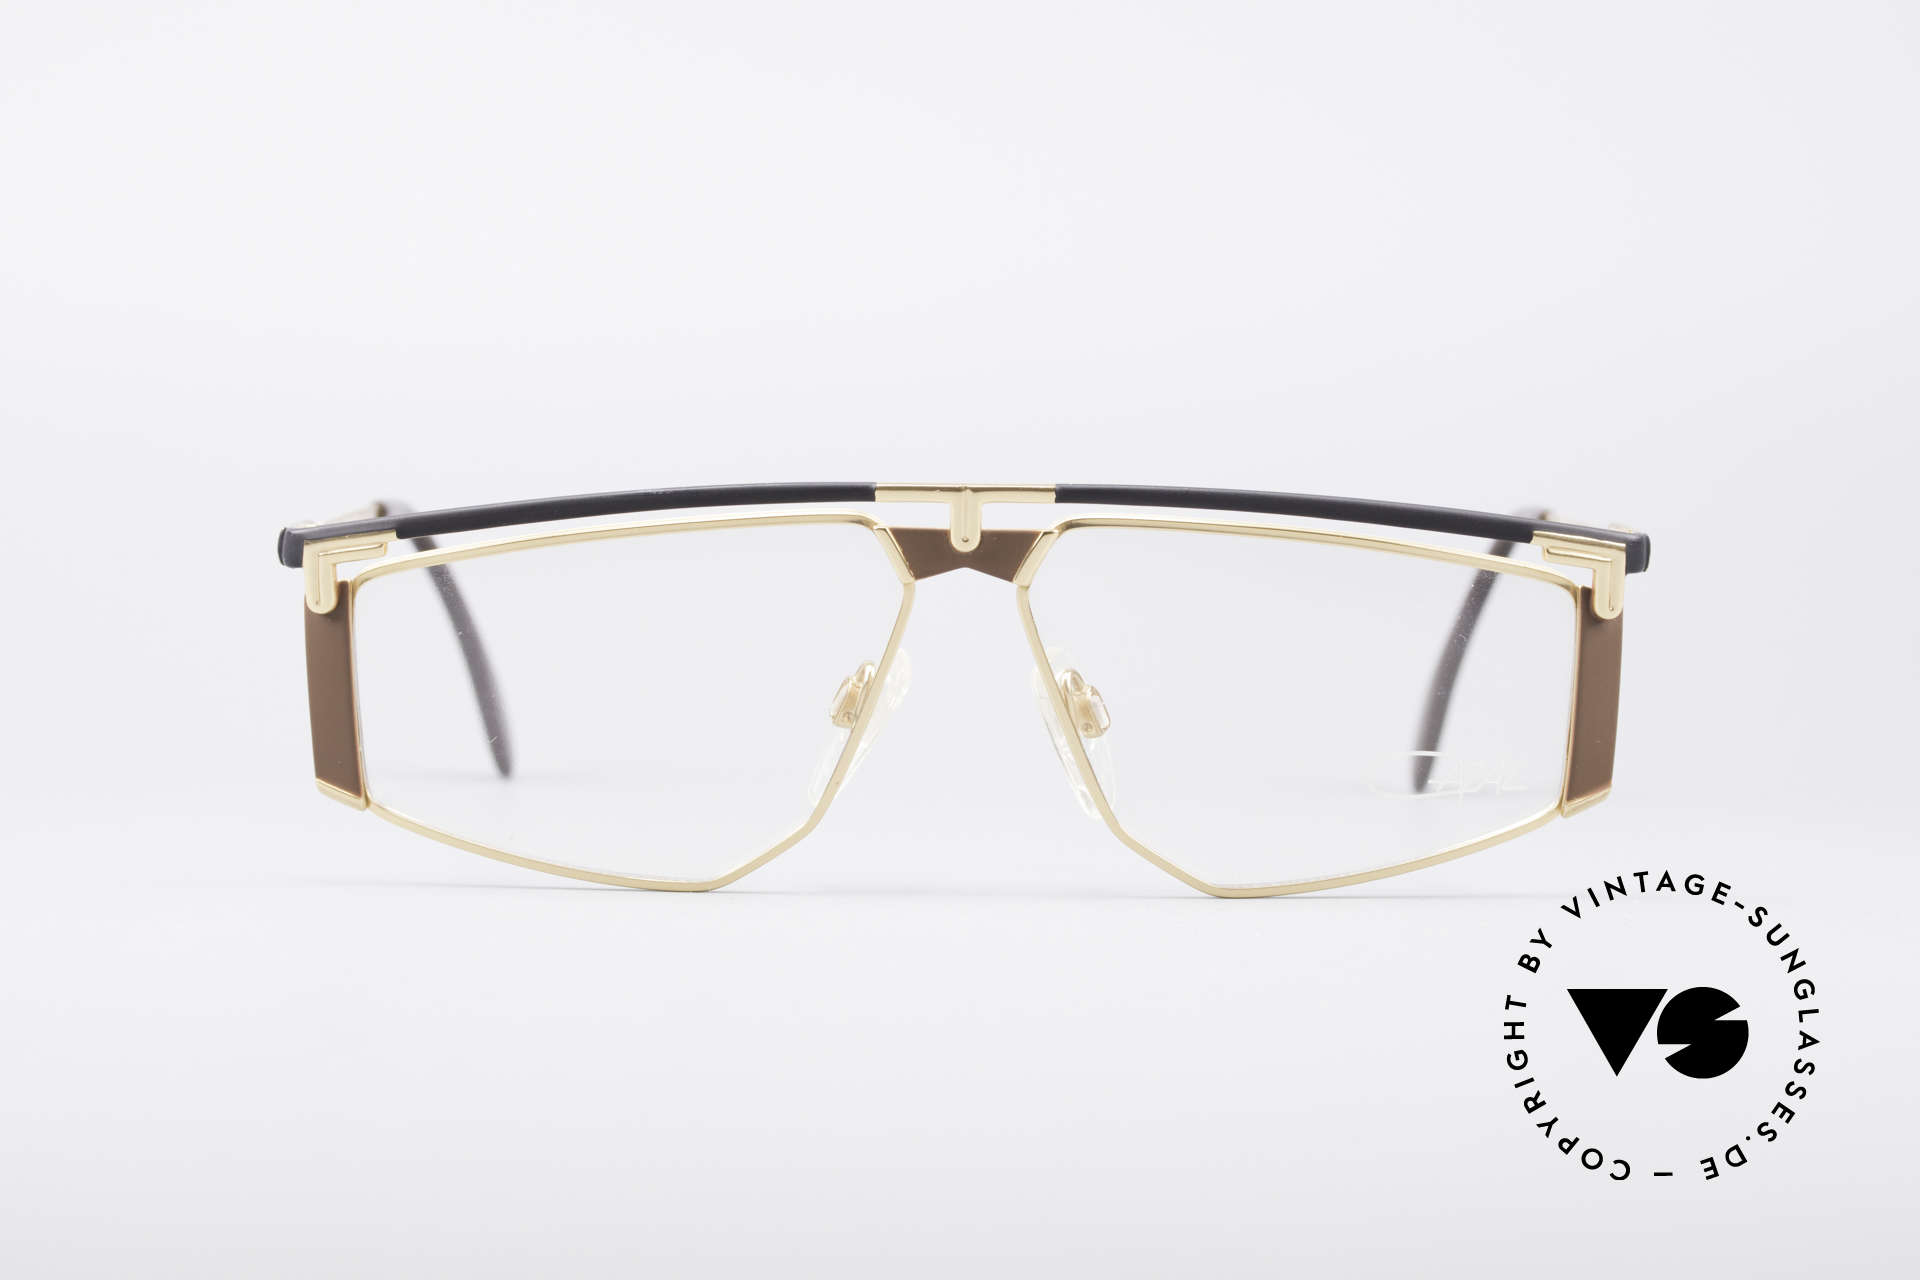 Cazal 235 Titanium Vintage Frame, 1. class wearing comfort thanks to lightweight material, Made for Men and Women